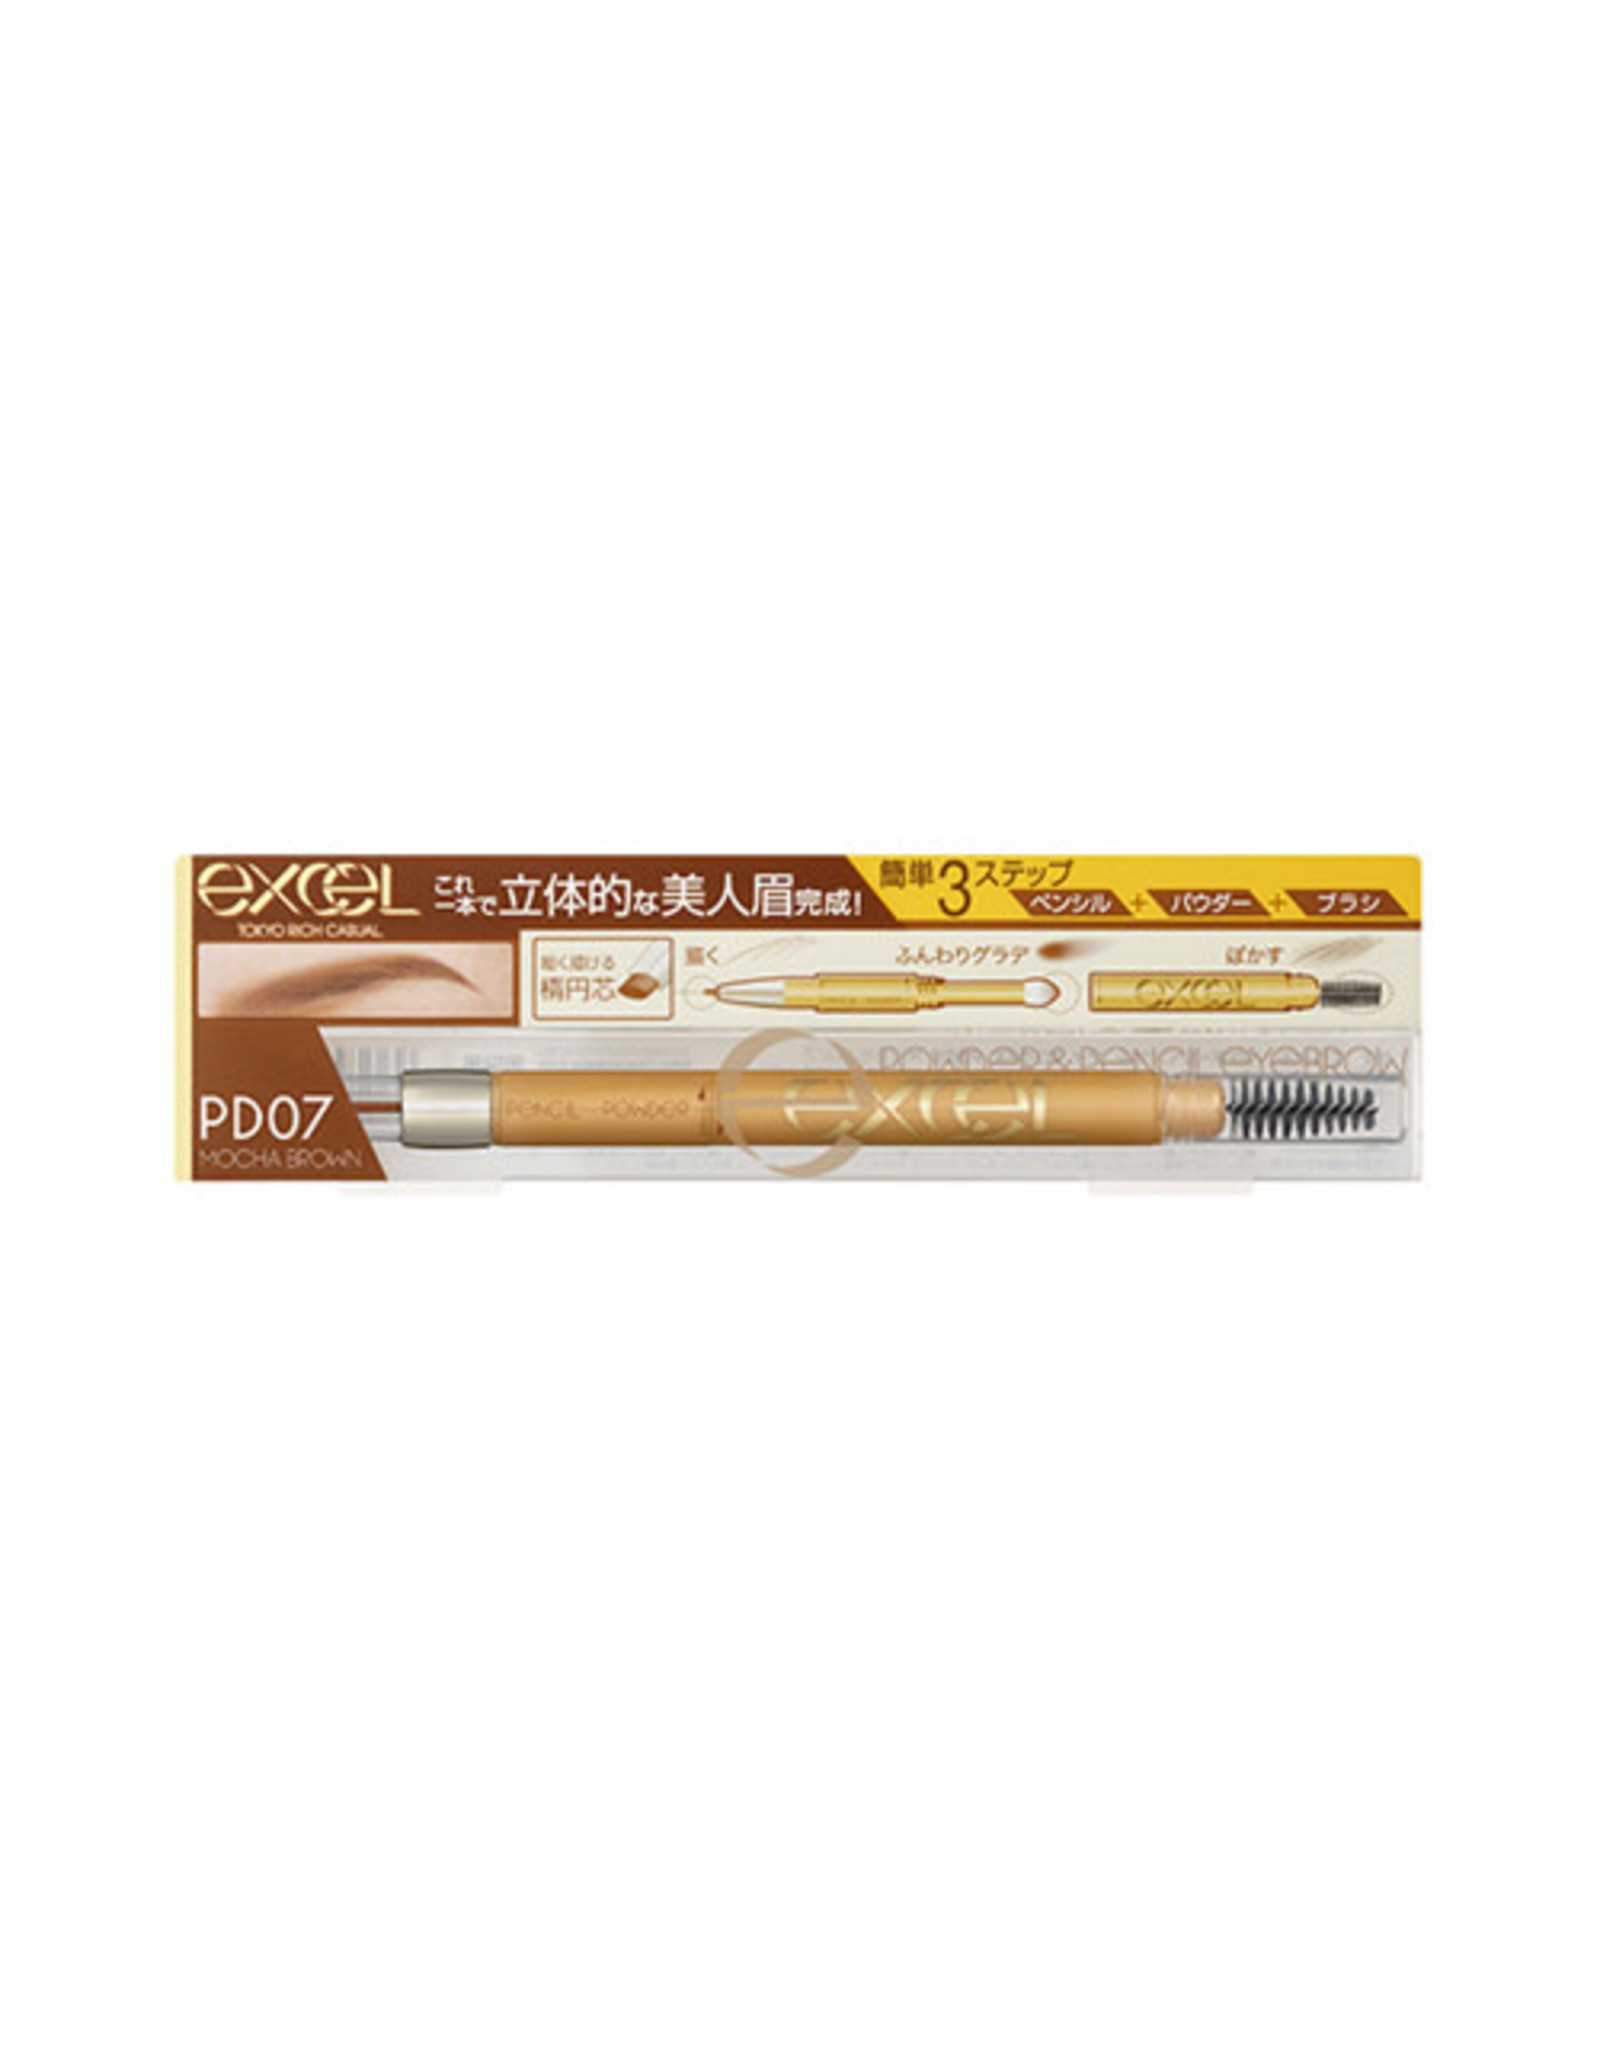 Sana Excel Powder & Pencil Eyebrow EX PD02 Camel Brown